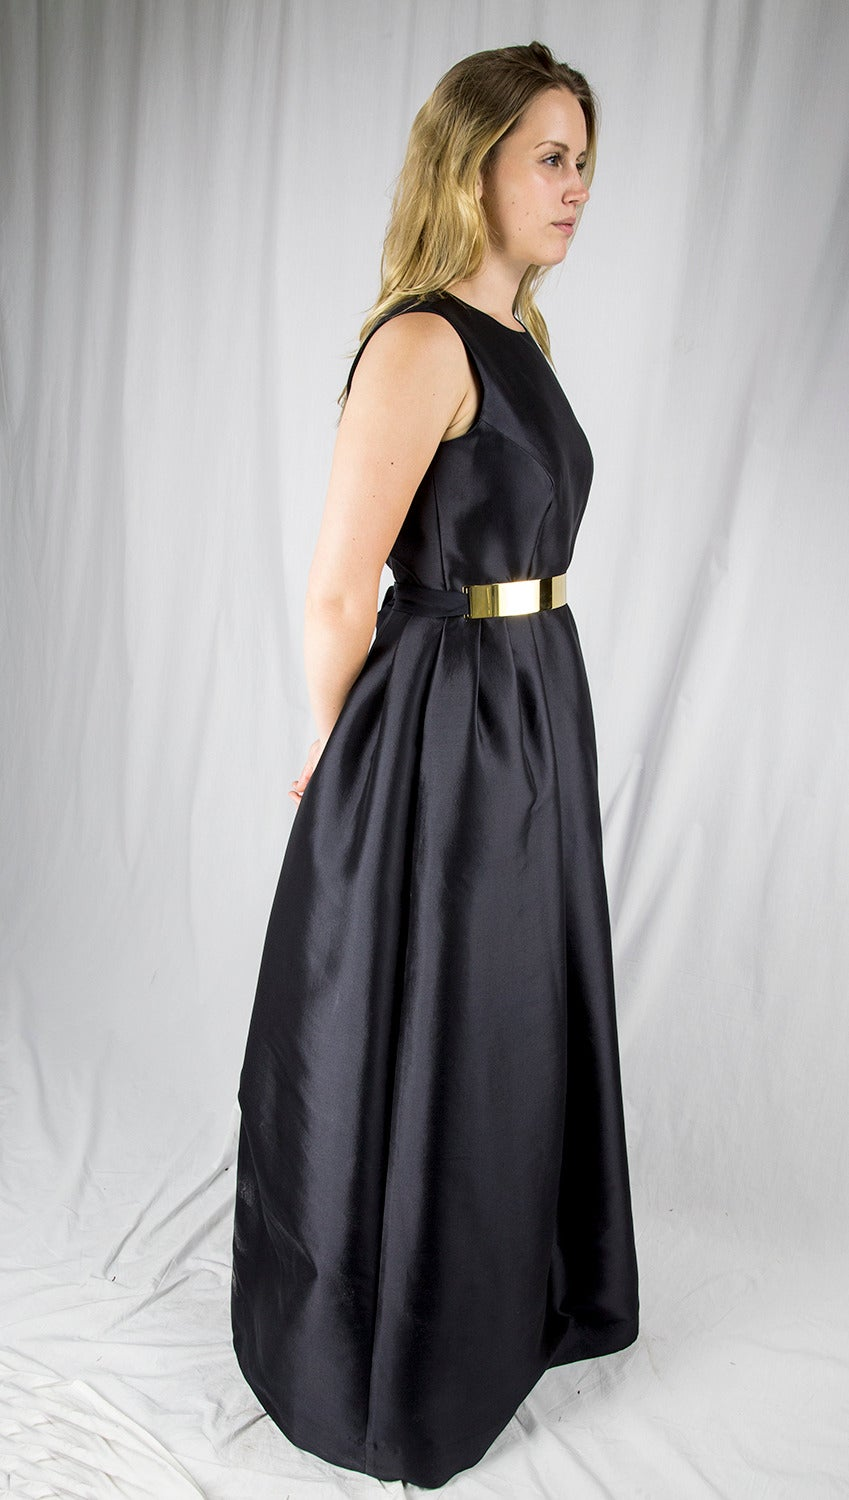 Women's Wayne Clark Black Gold Belted Gown For Sale